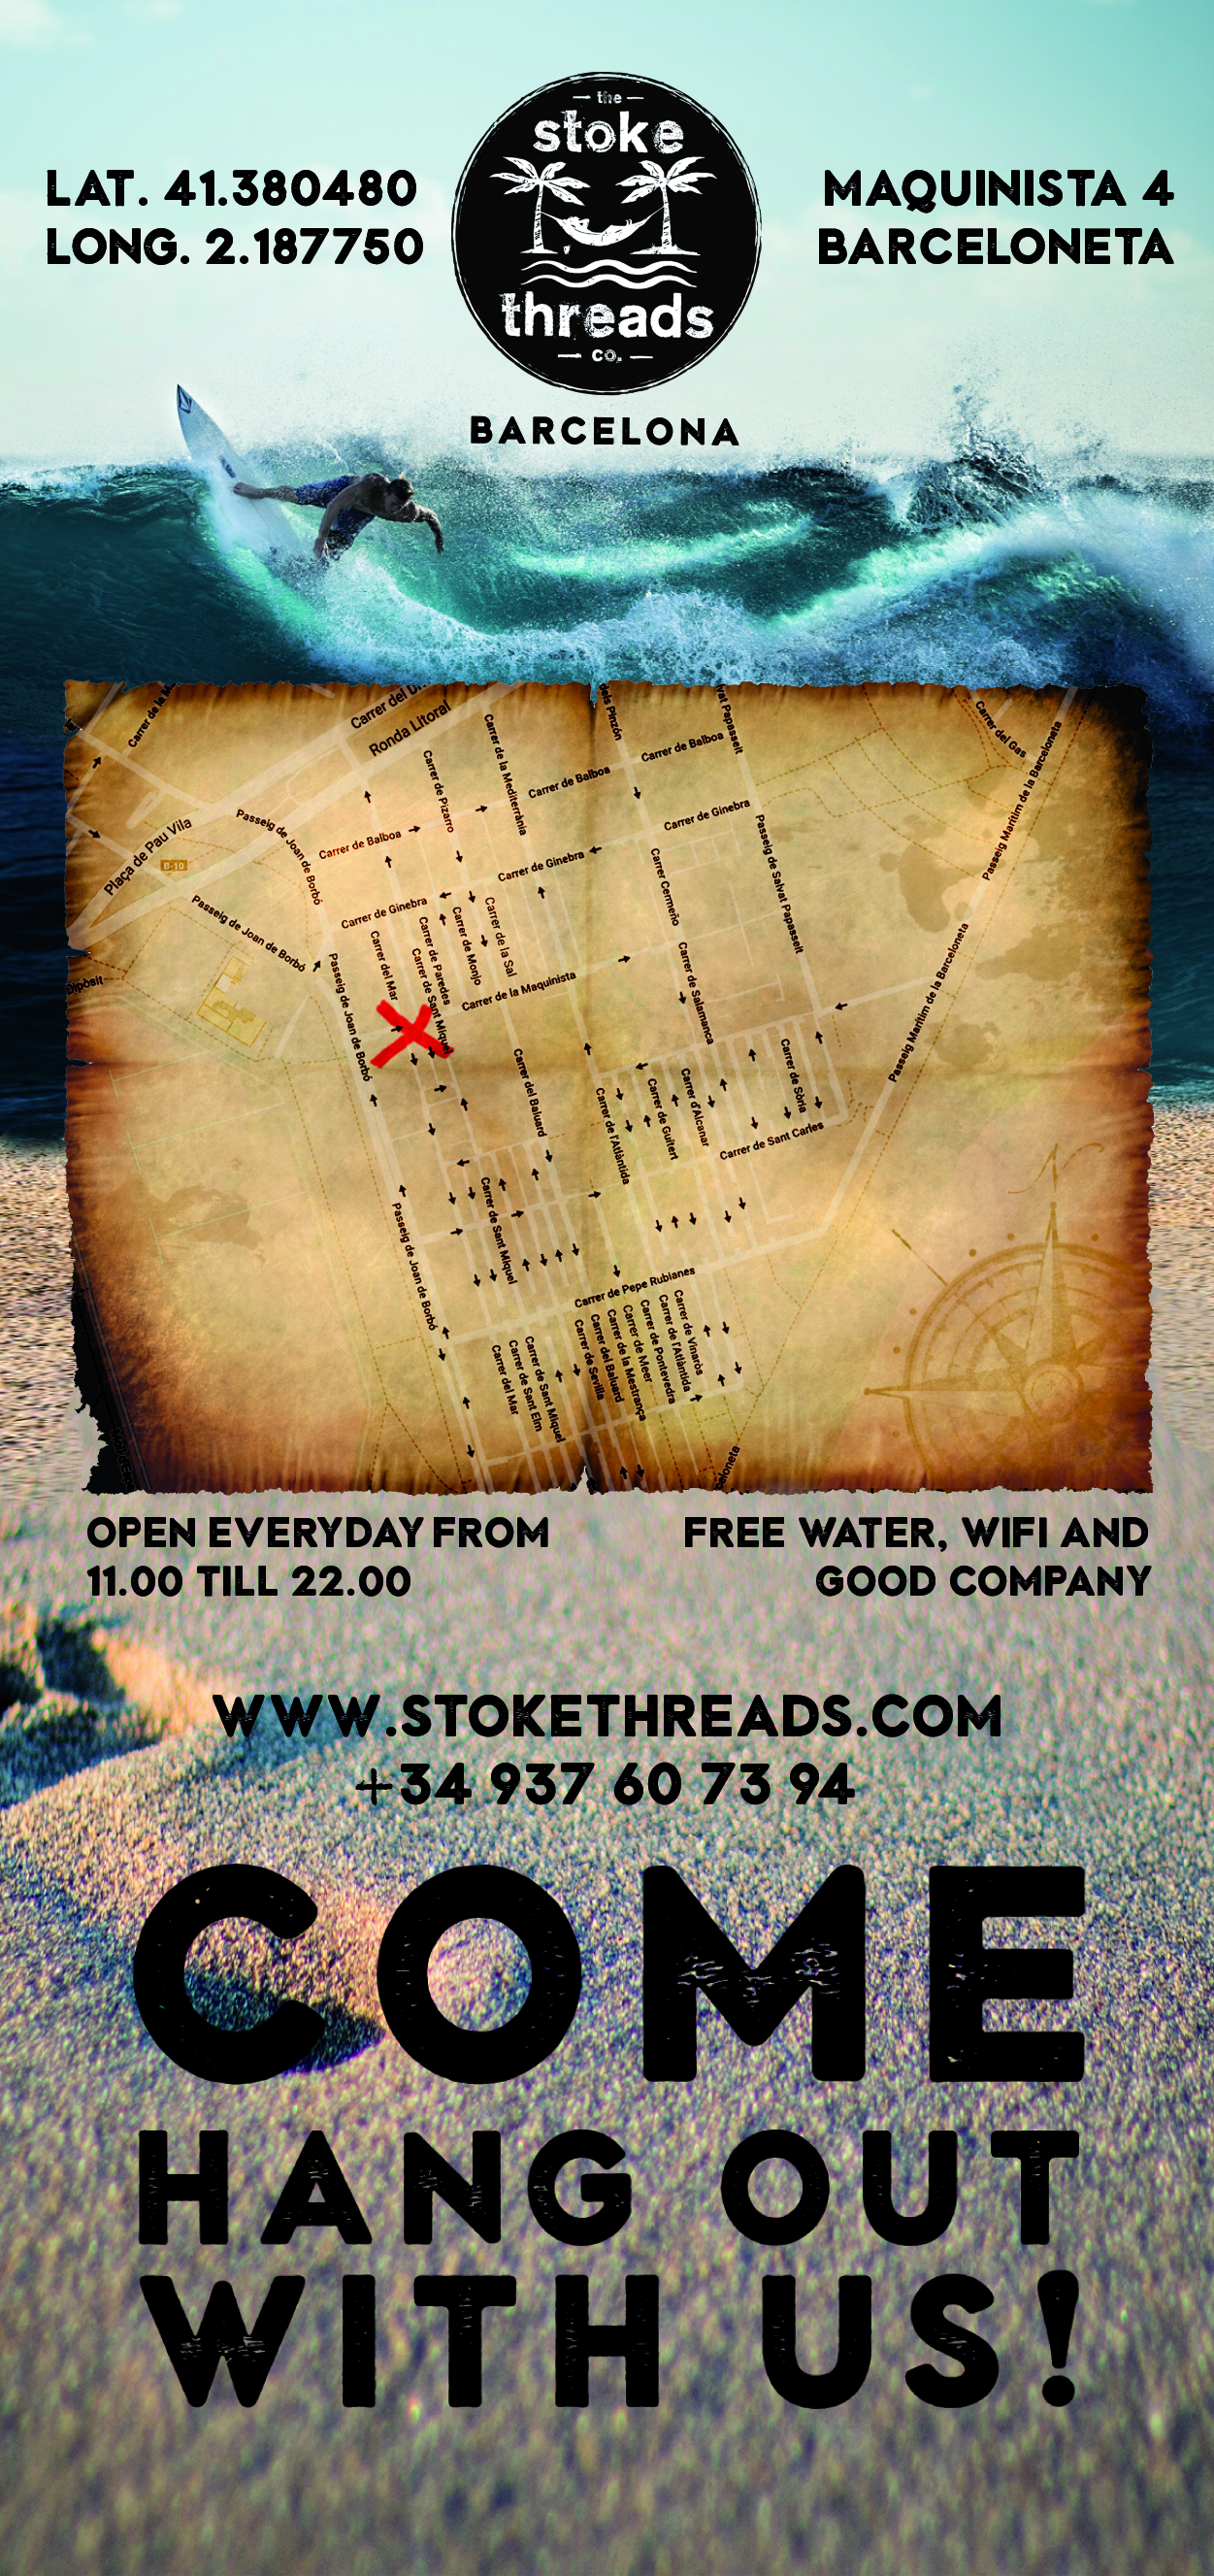 Stoke Threads Flyer achterkant